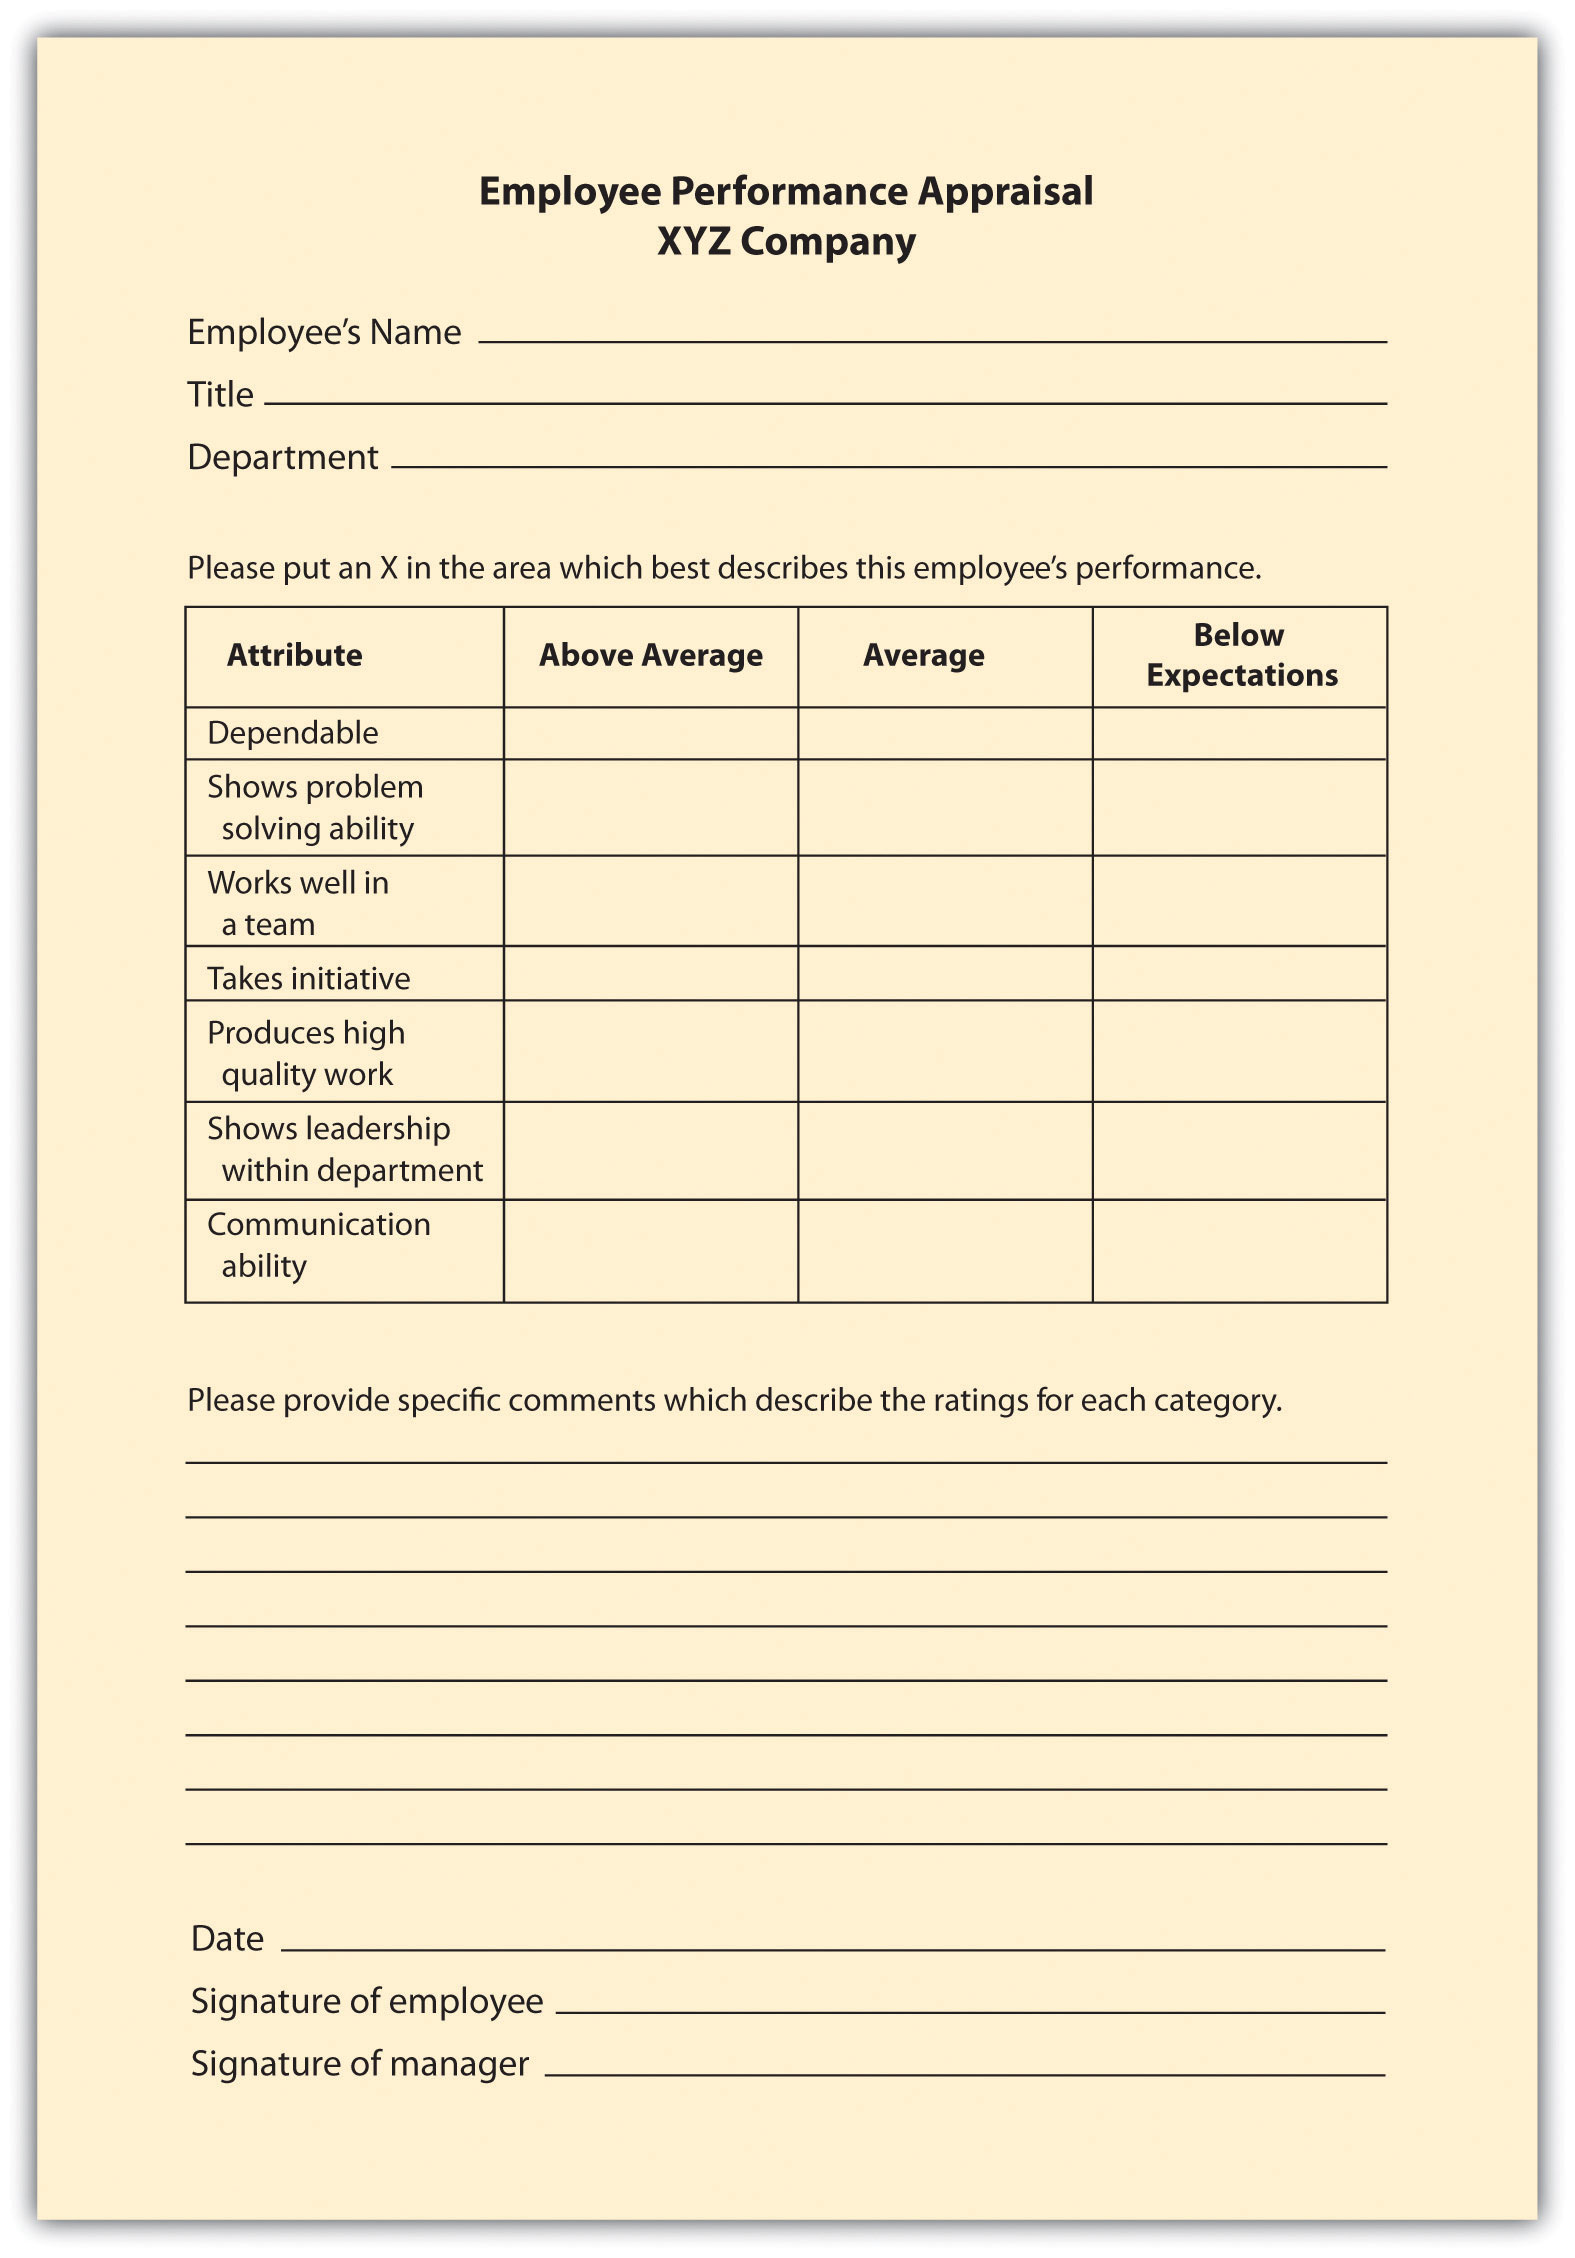 appraisal methods checklist scale